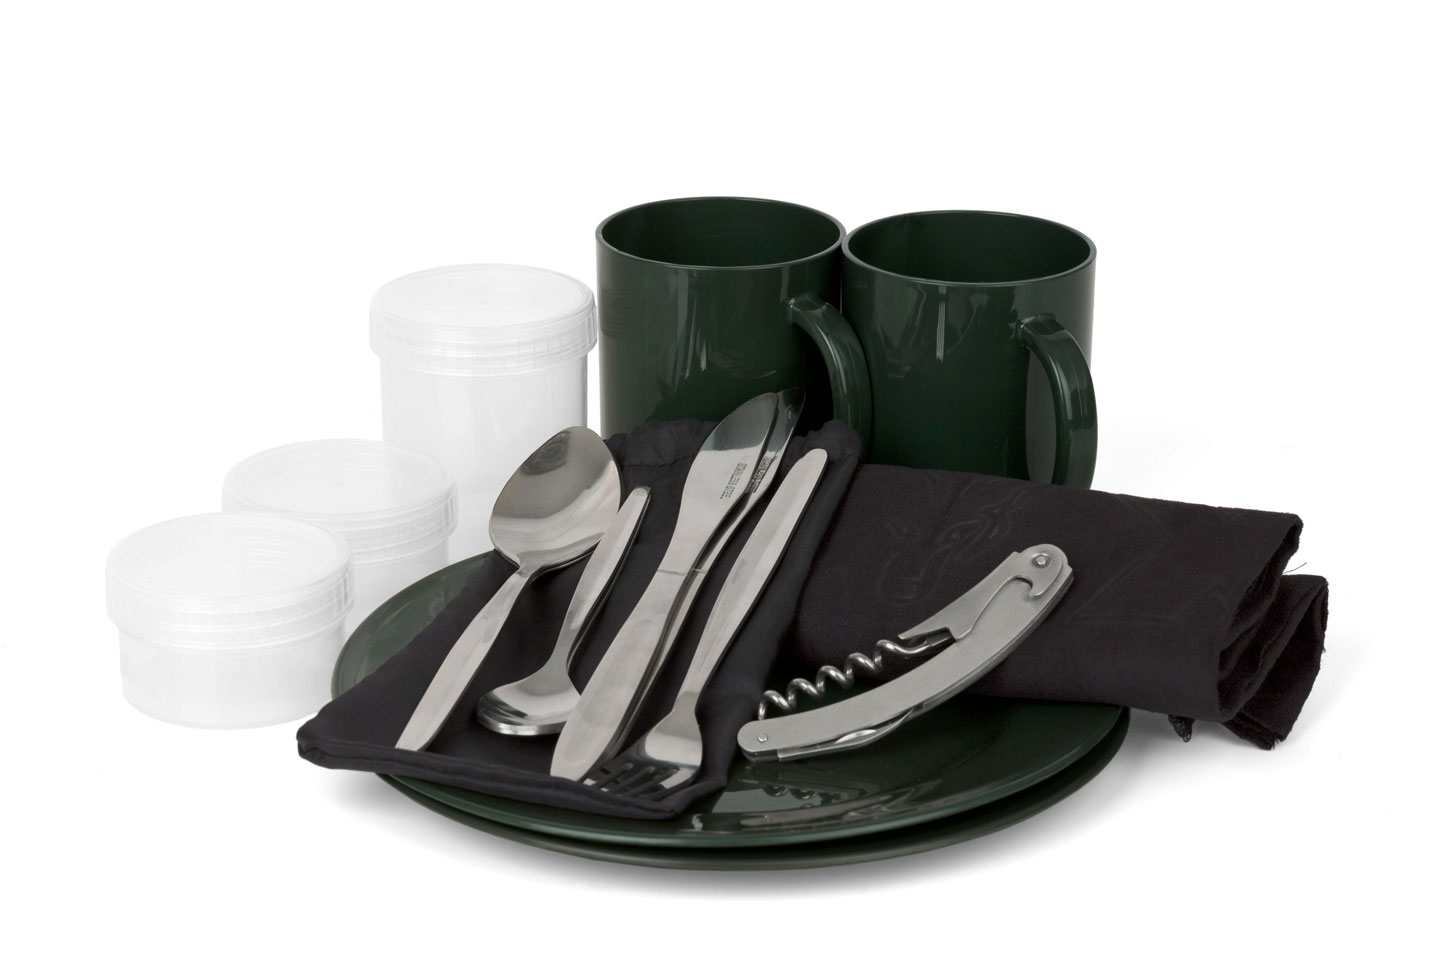 r-series-2-man-dinner-set_cu01jpg